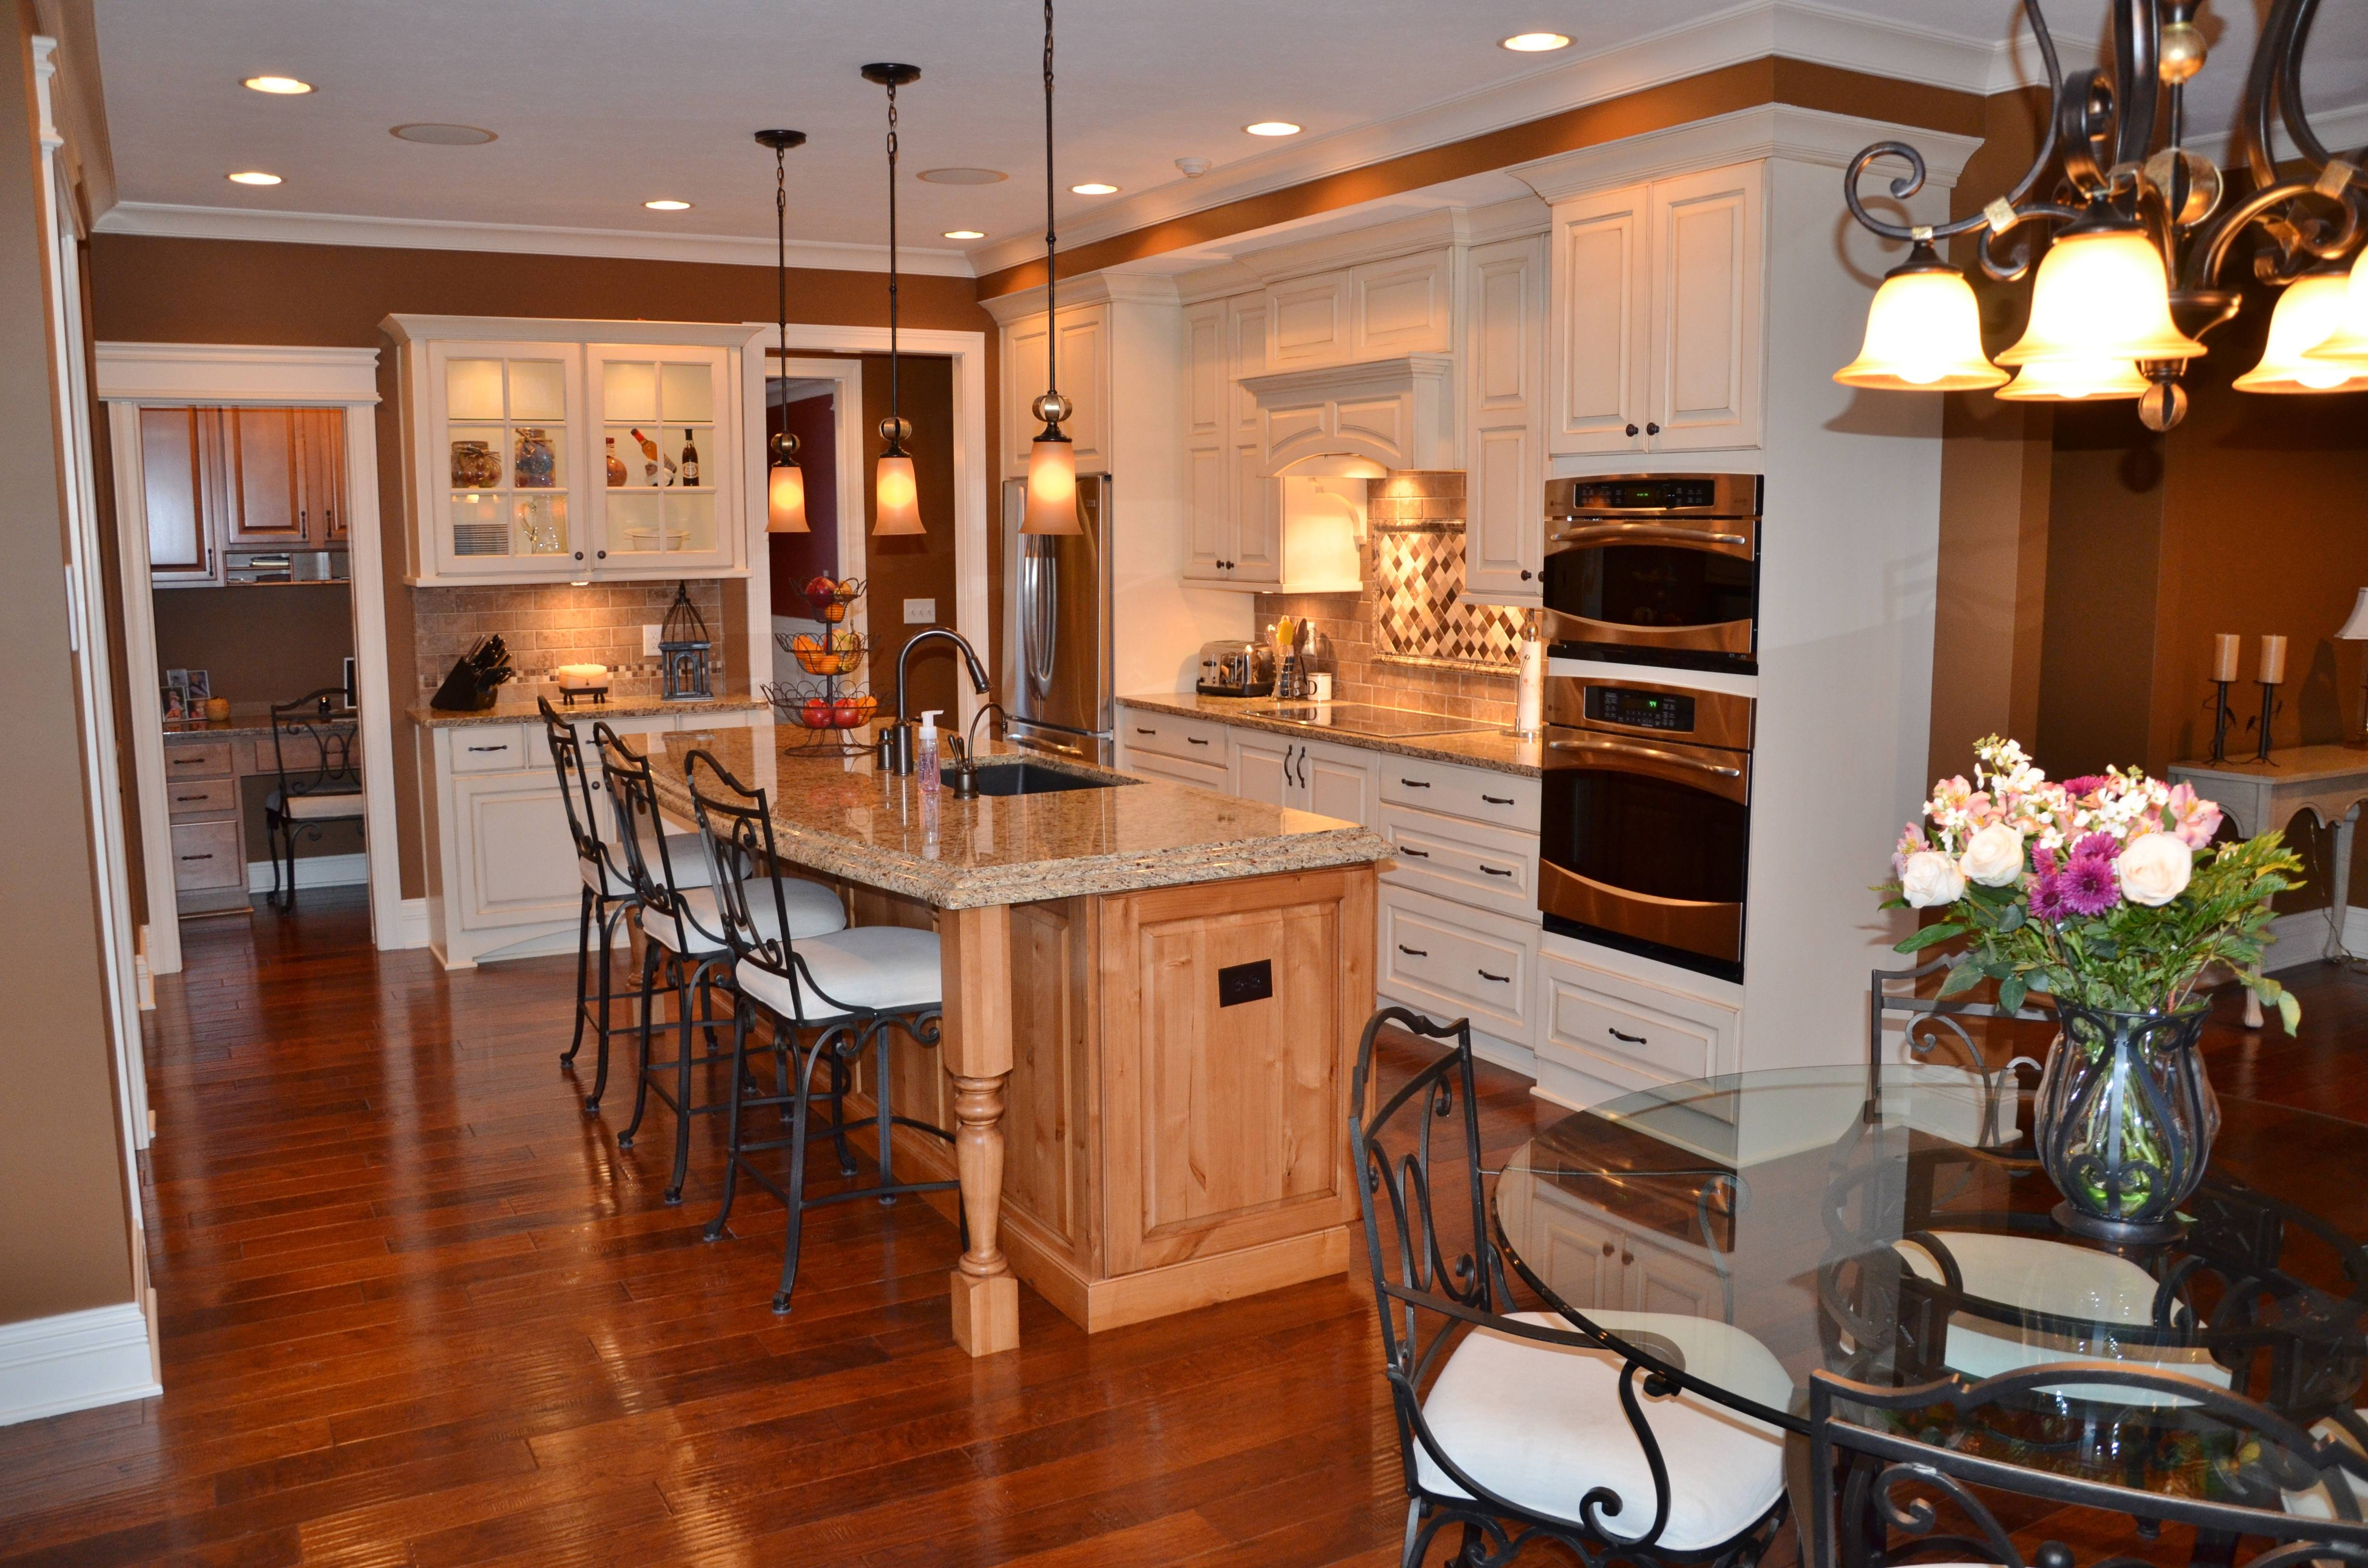 Kitchens Photo Gallery - Heartwood Homes